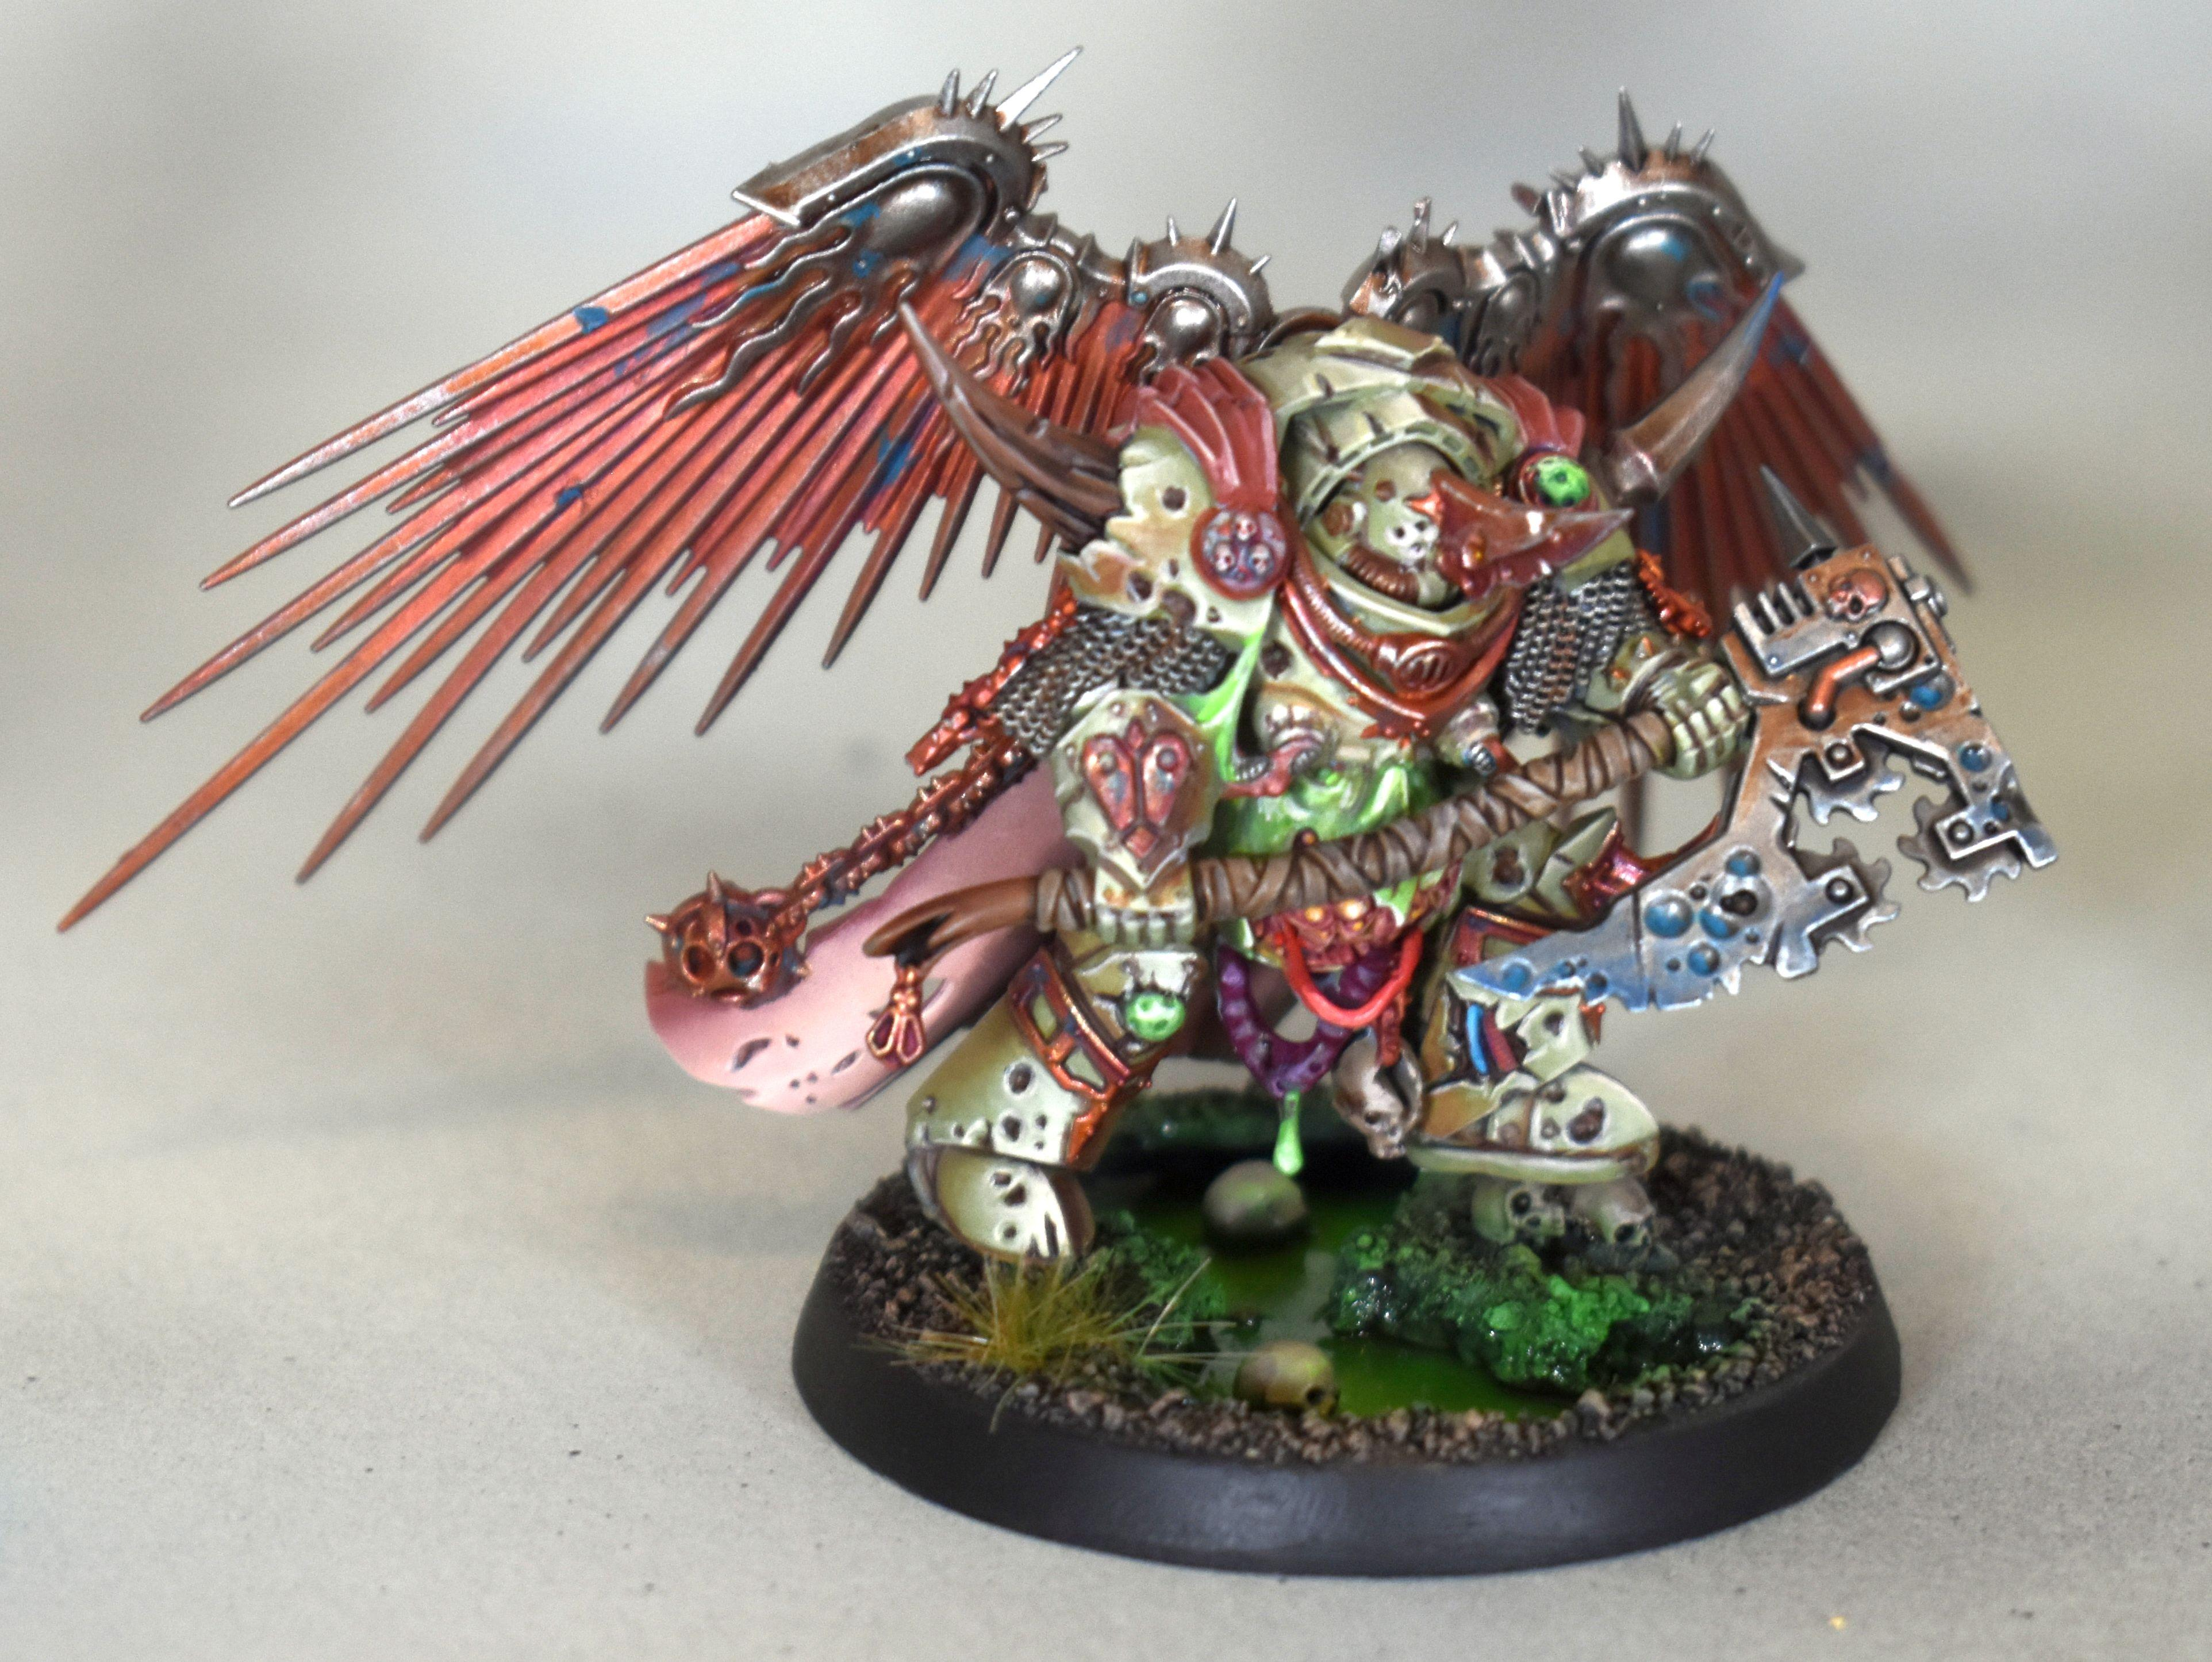 Axe, Chaos, Lord Of Contagion, Nurgle, Space, Space Marines